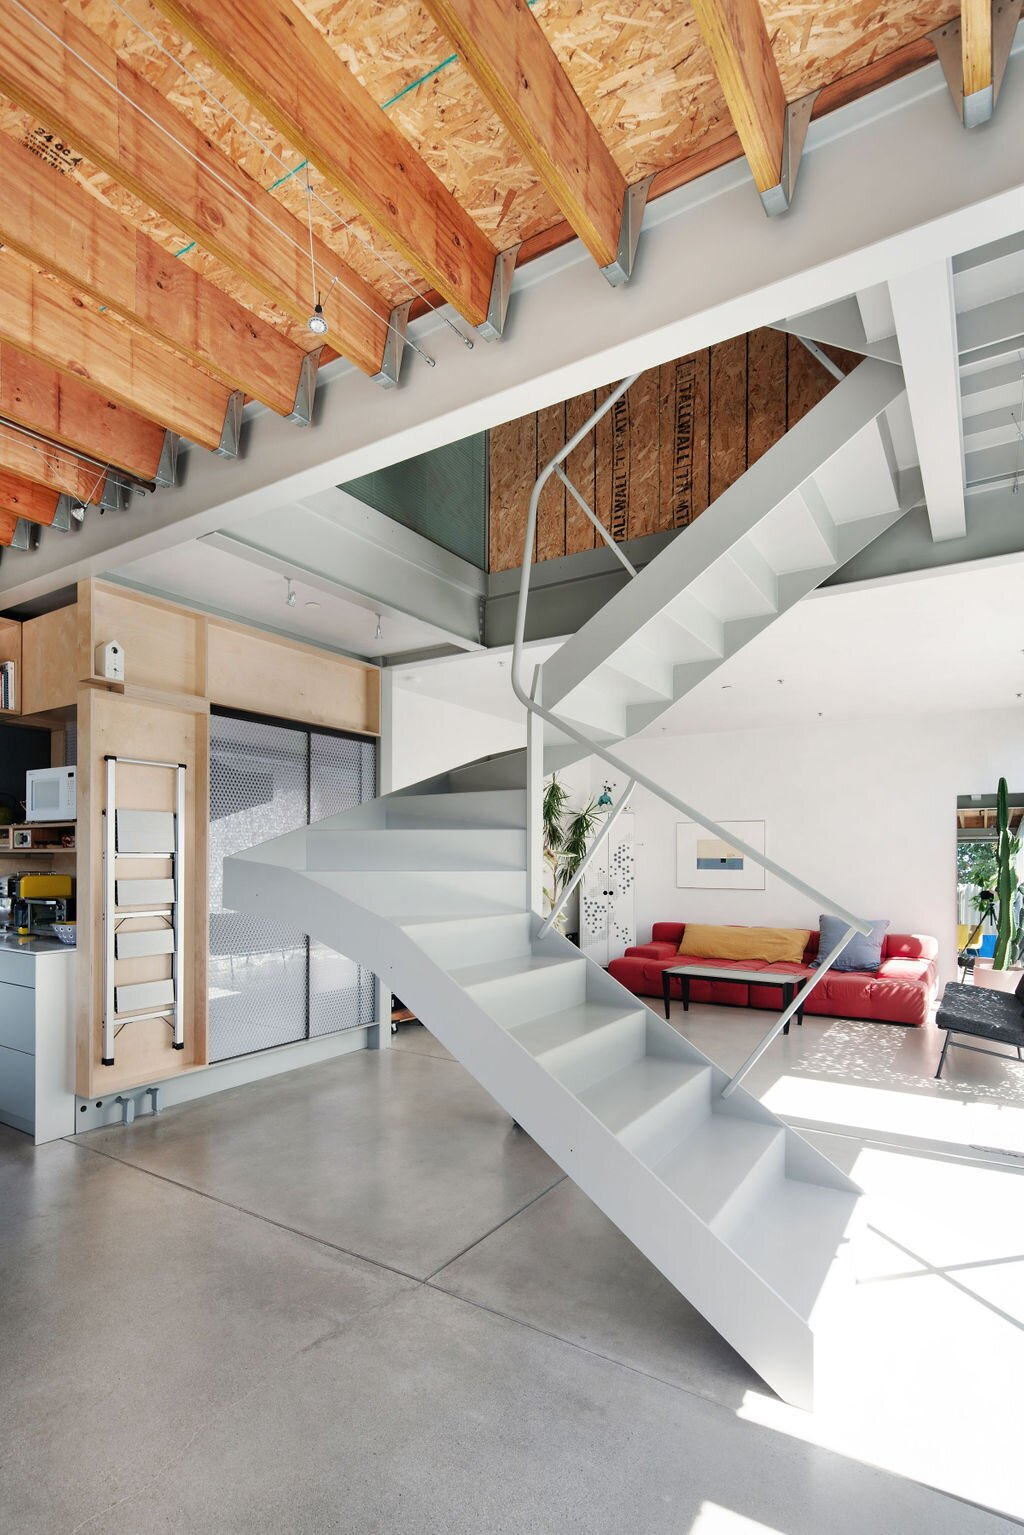 """""""The ground floor is great for hosting; the concrete floors, glass walls, and front yard make these main living spaces feel inviting and casual,  Photo 6 of 14 in Listed for $2.7M, This Architect's Award-Winning Home in Southern California Is a Must-See"""